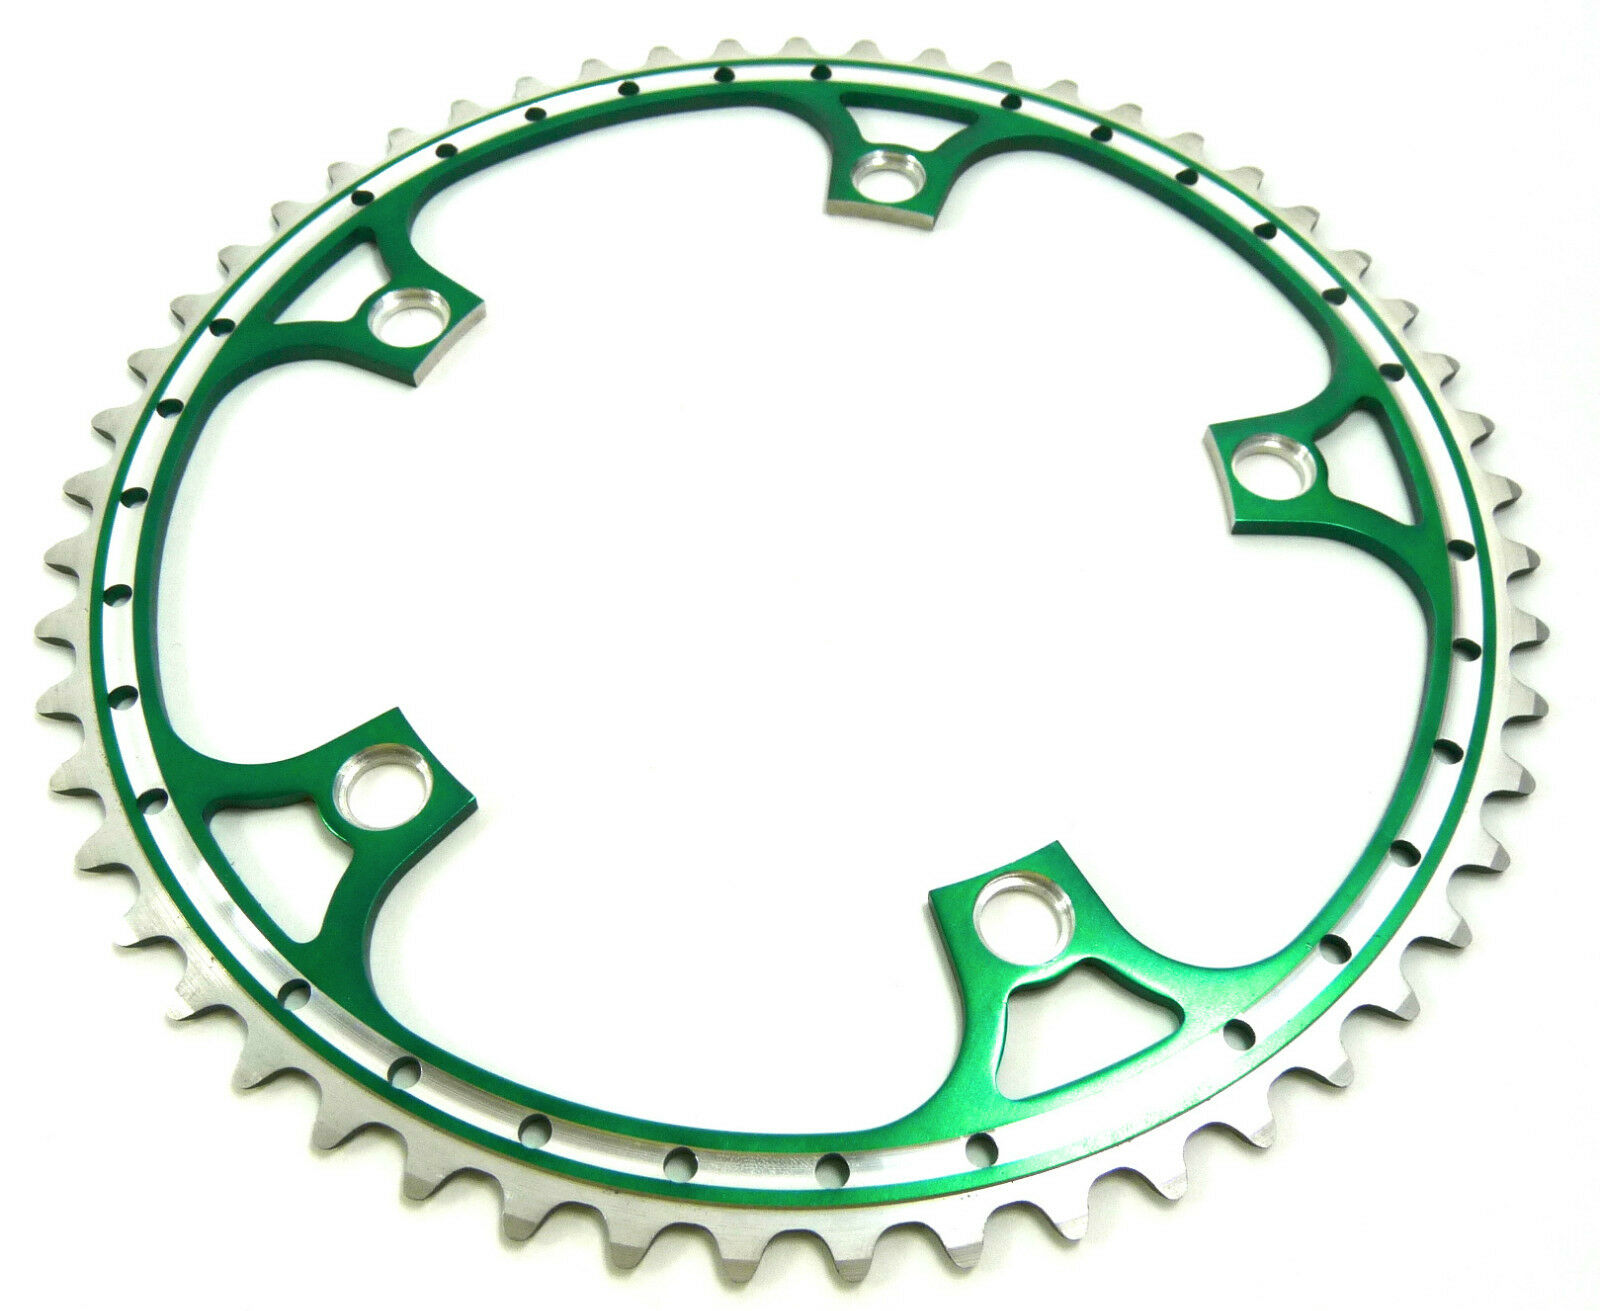 Rino Green Anodized Chainring 53T 144 Bcd Drilled Fits Campagnolo Cranksets NOS